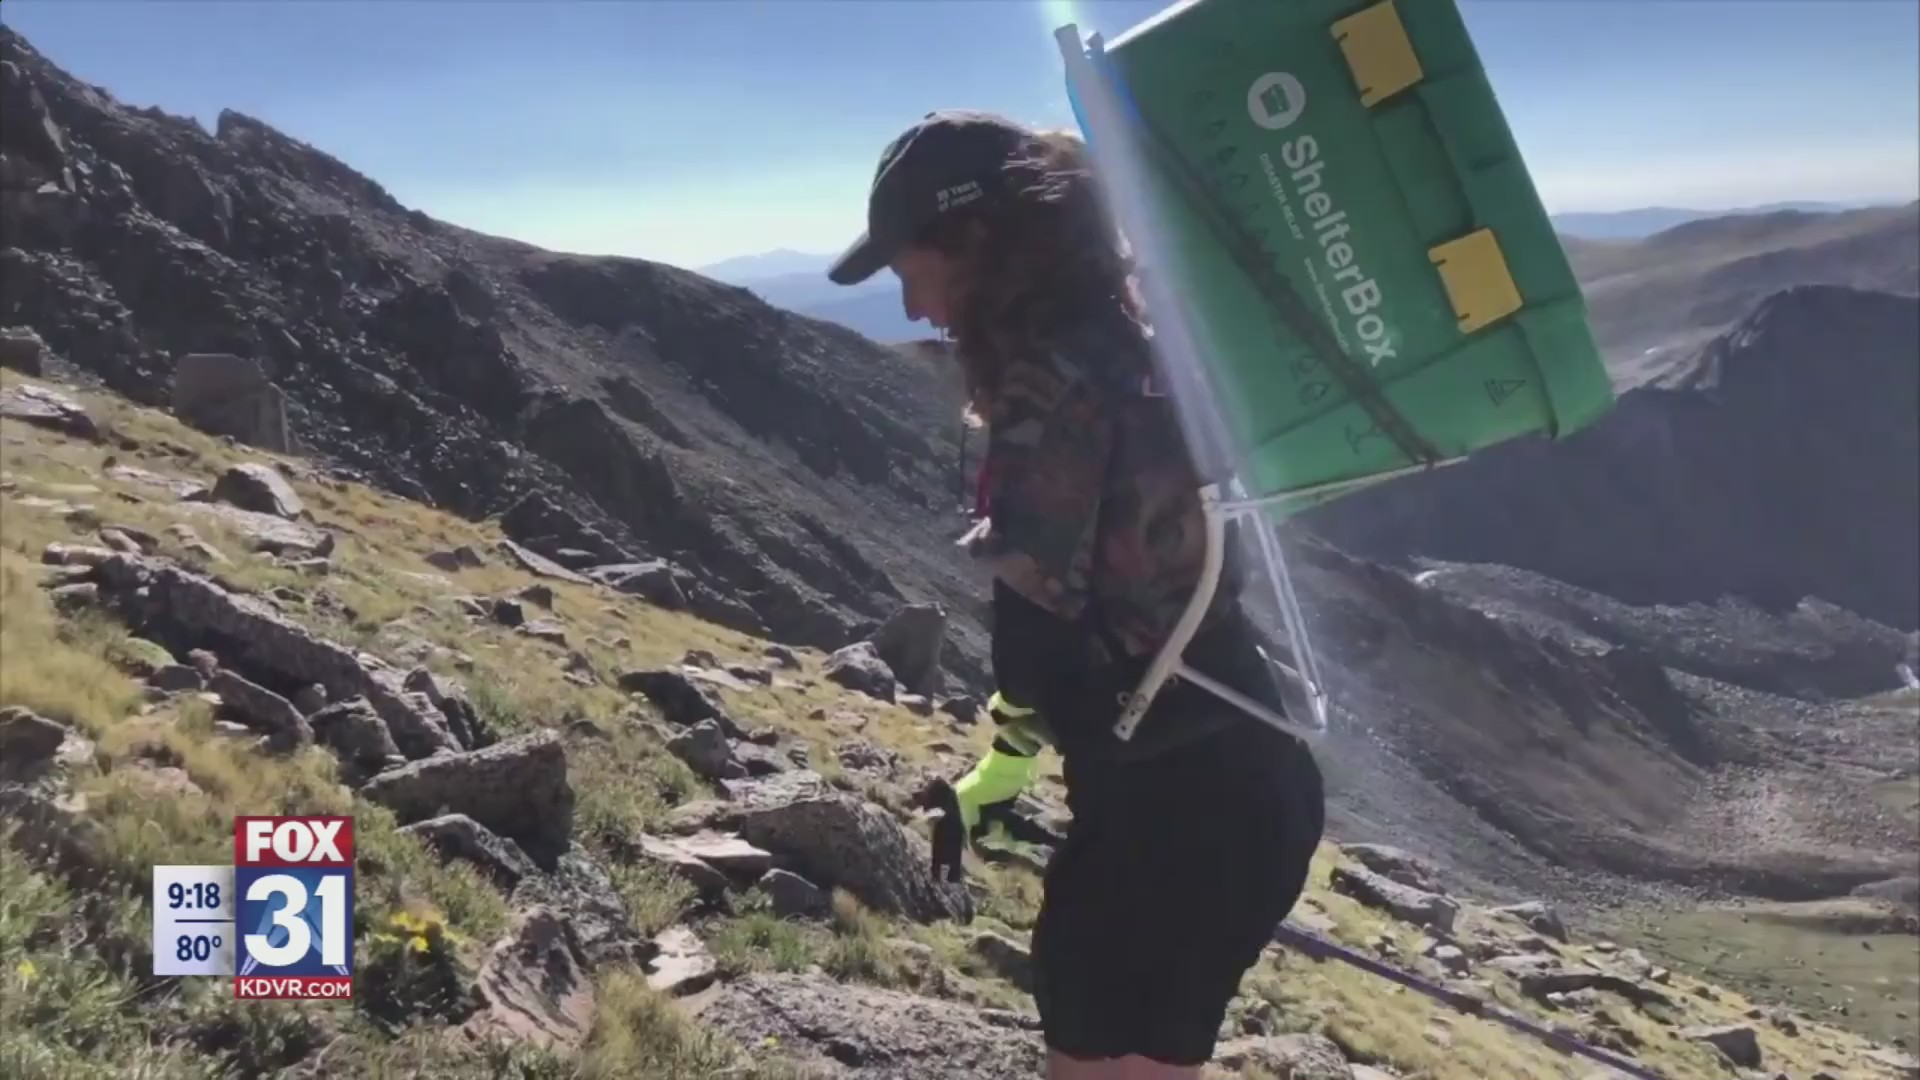 Denver Woman Climbing Every Colorado 14er To Raise Awareness for Those in Need